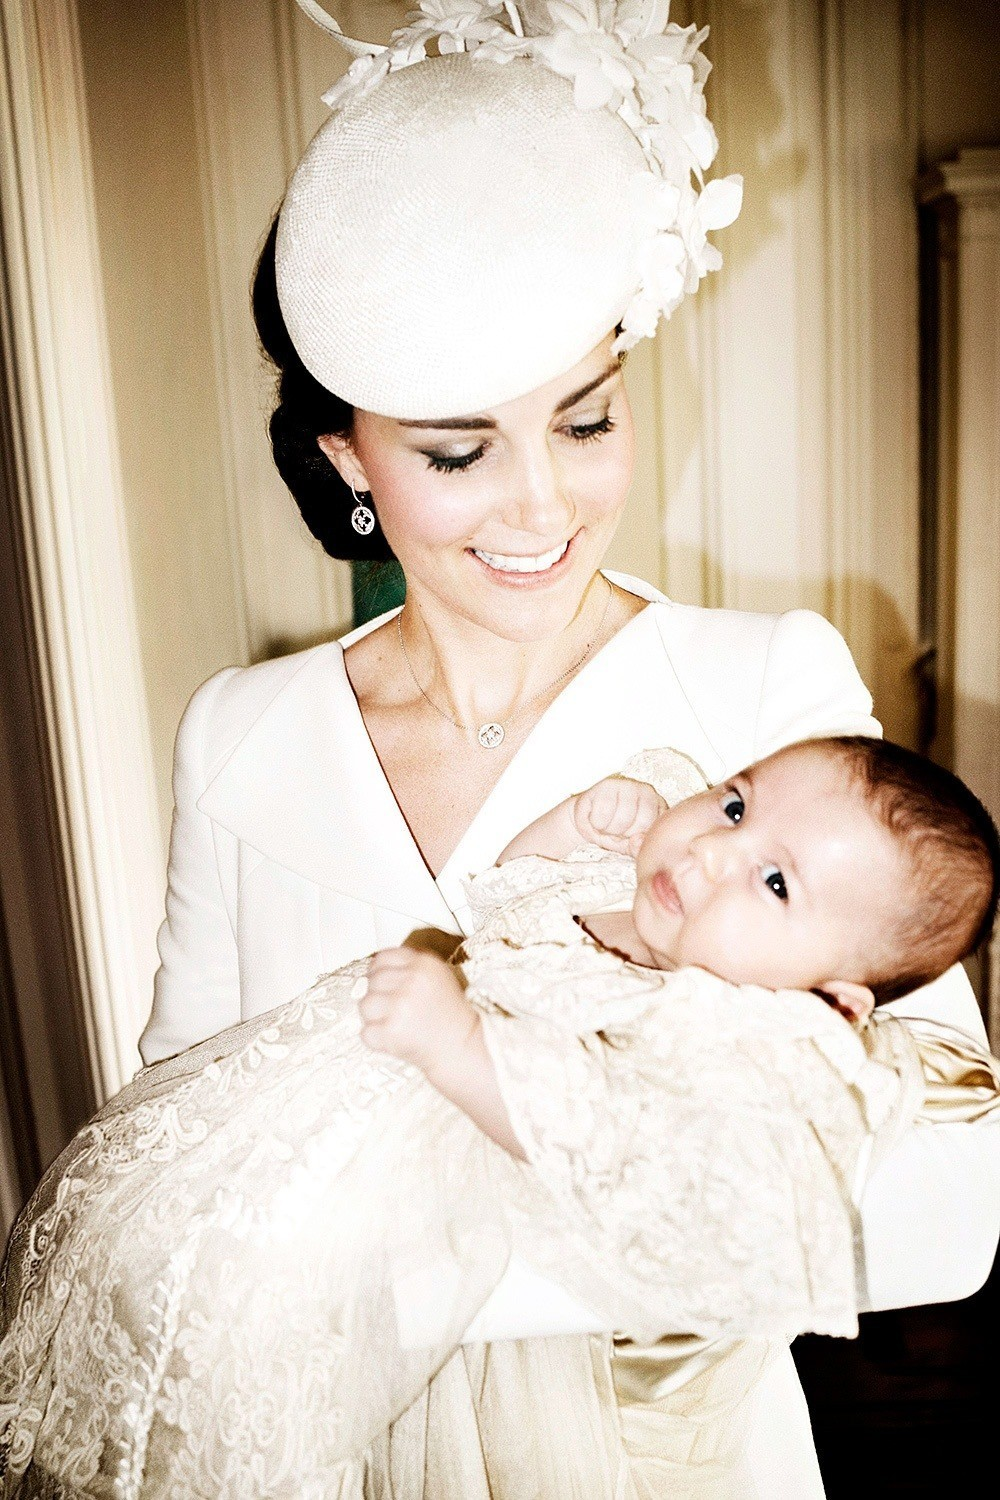 PrincessCharlotte